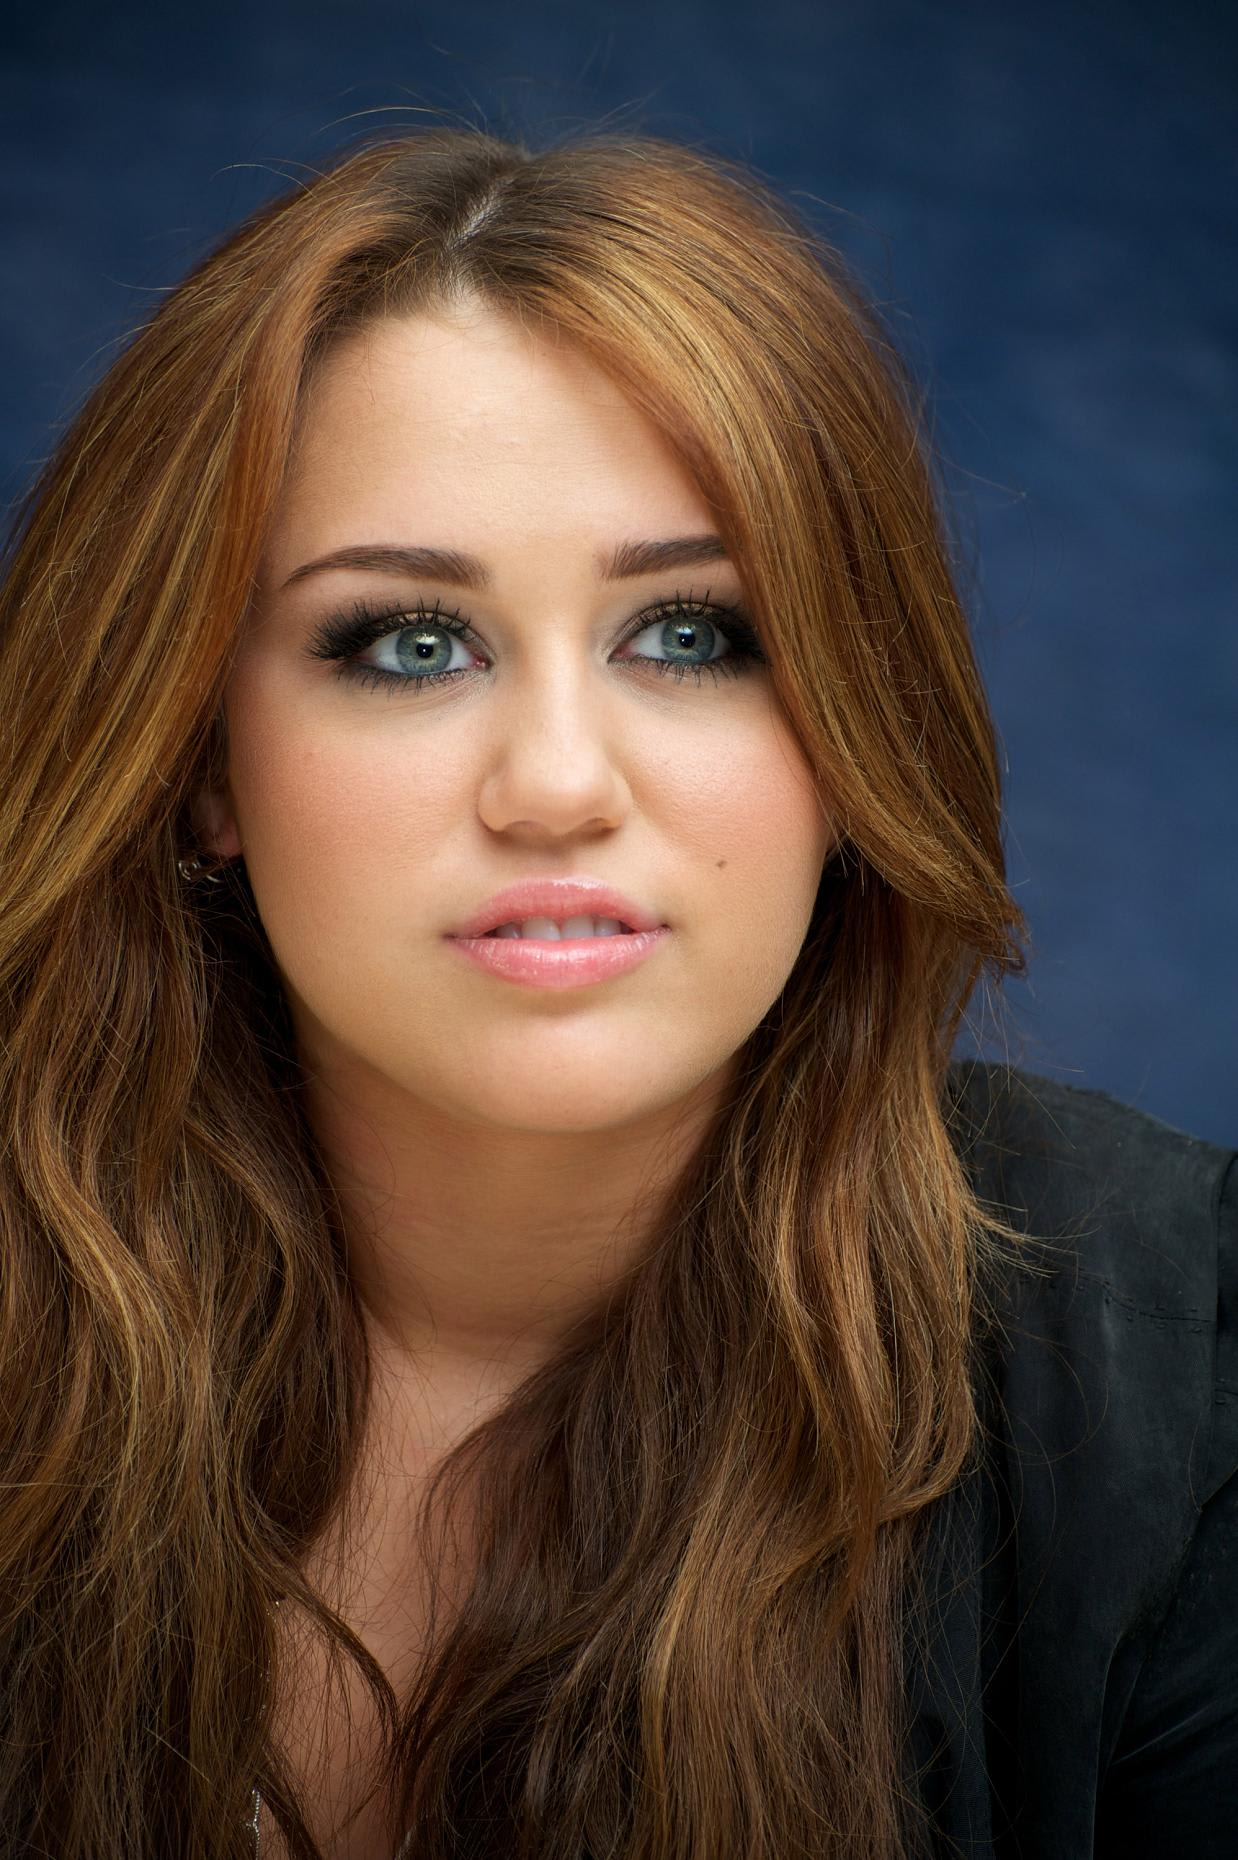 Miley Cyrus - The Last Song Press Conference 13 Mar 2010 ...